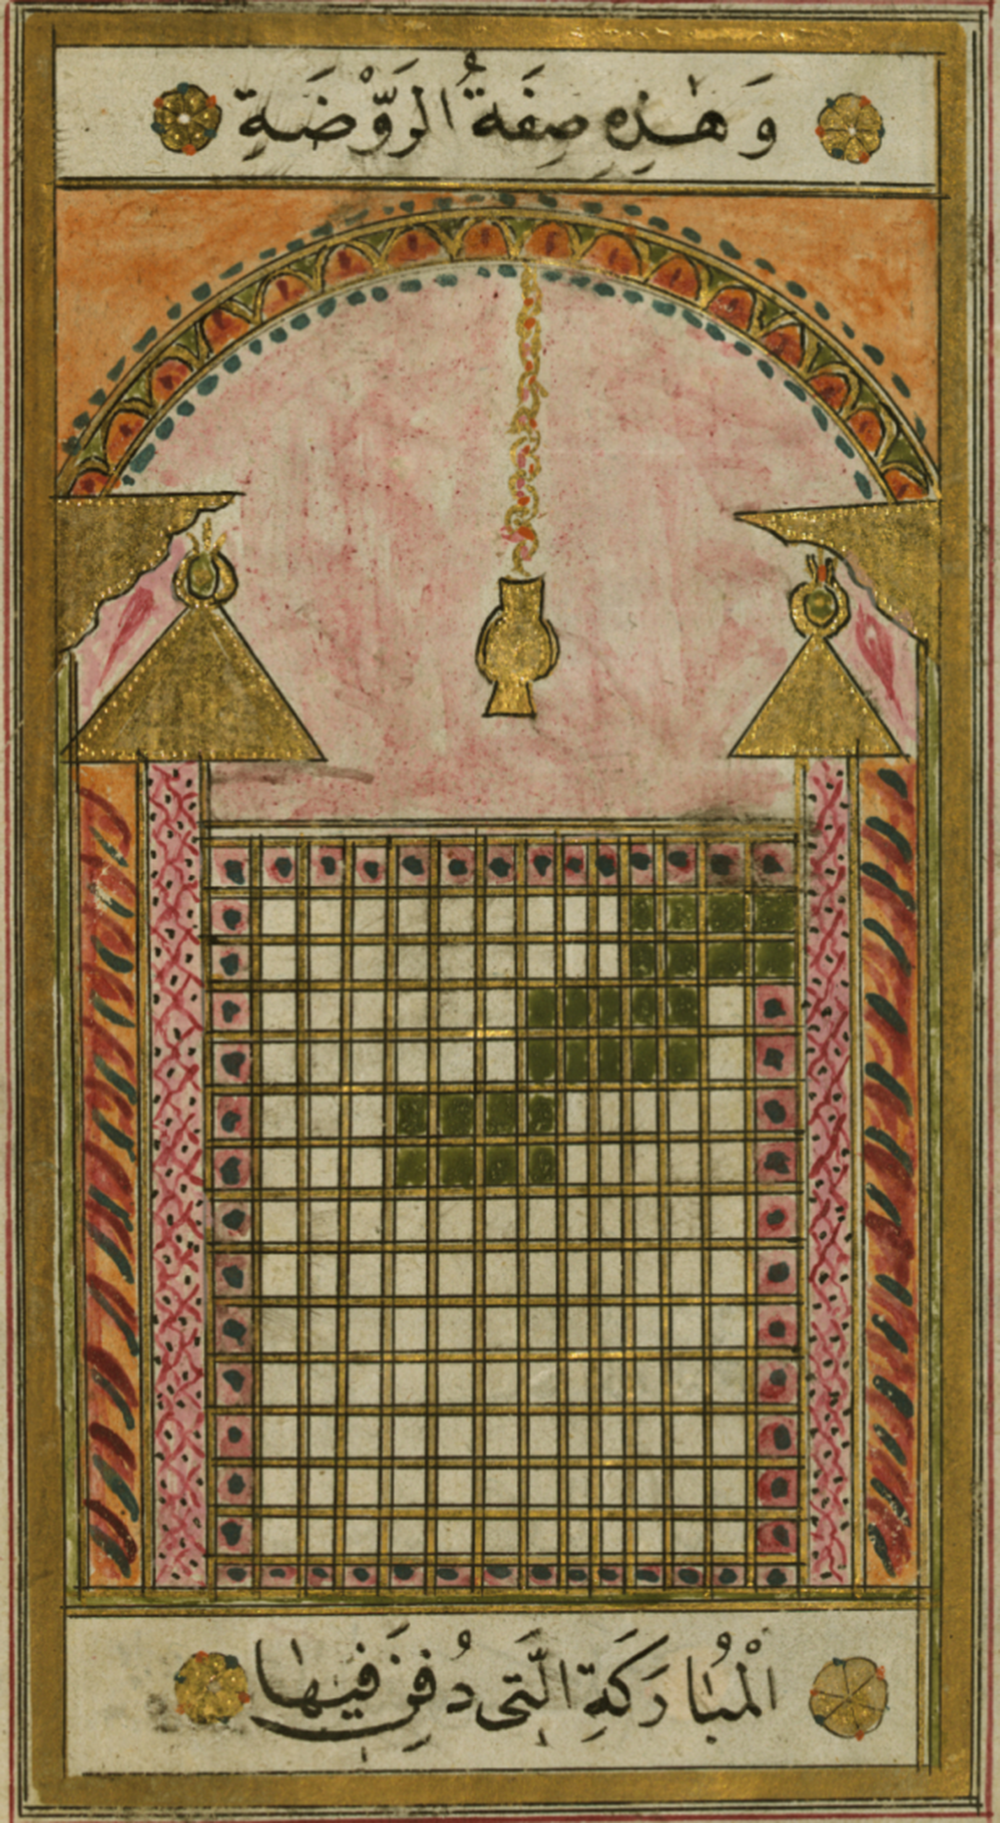 "Mosque compound in Medina with the tombs of Muhammad, Abu Bakr, and Umar, from ""Collection of Prayers for the Prophet Muhammad,"" by Muhammad al-Jazuli, seventeenth century. The Walters Museum."